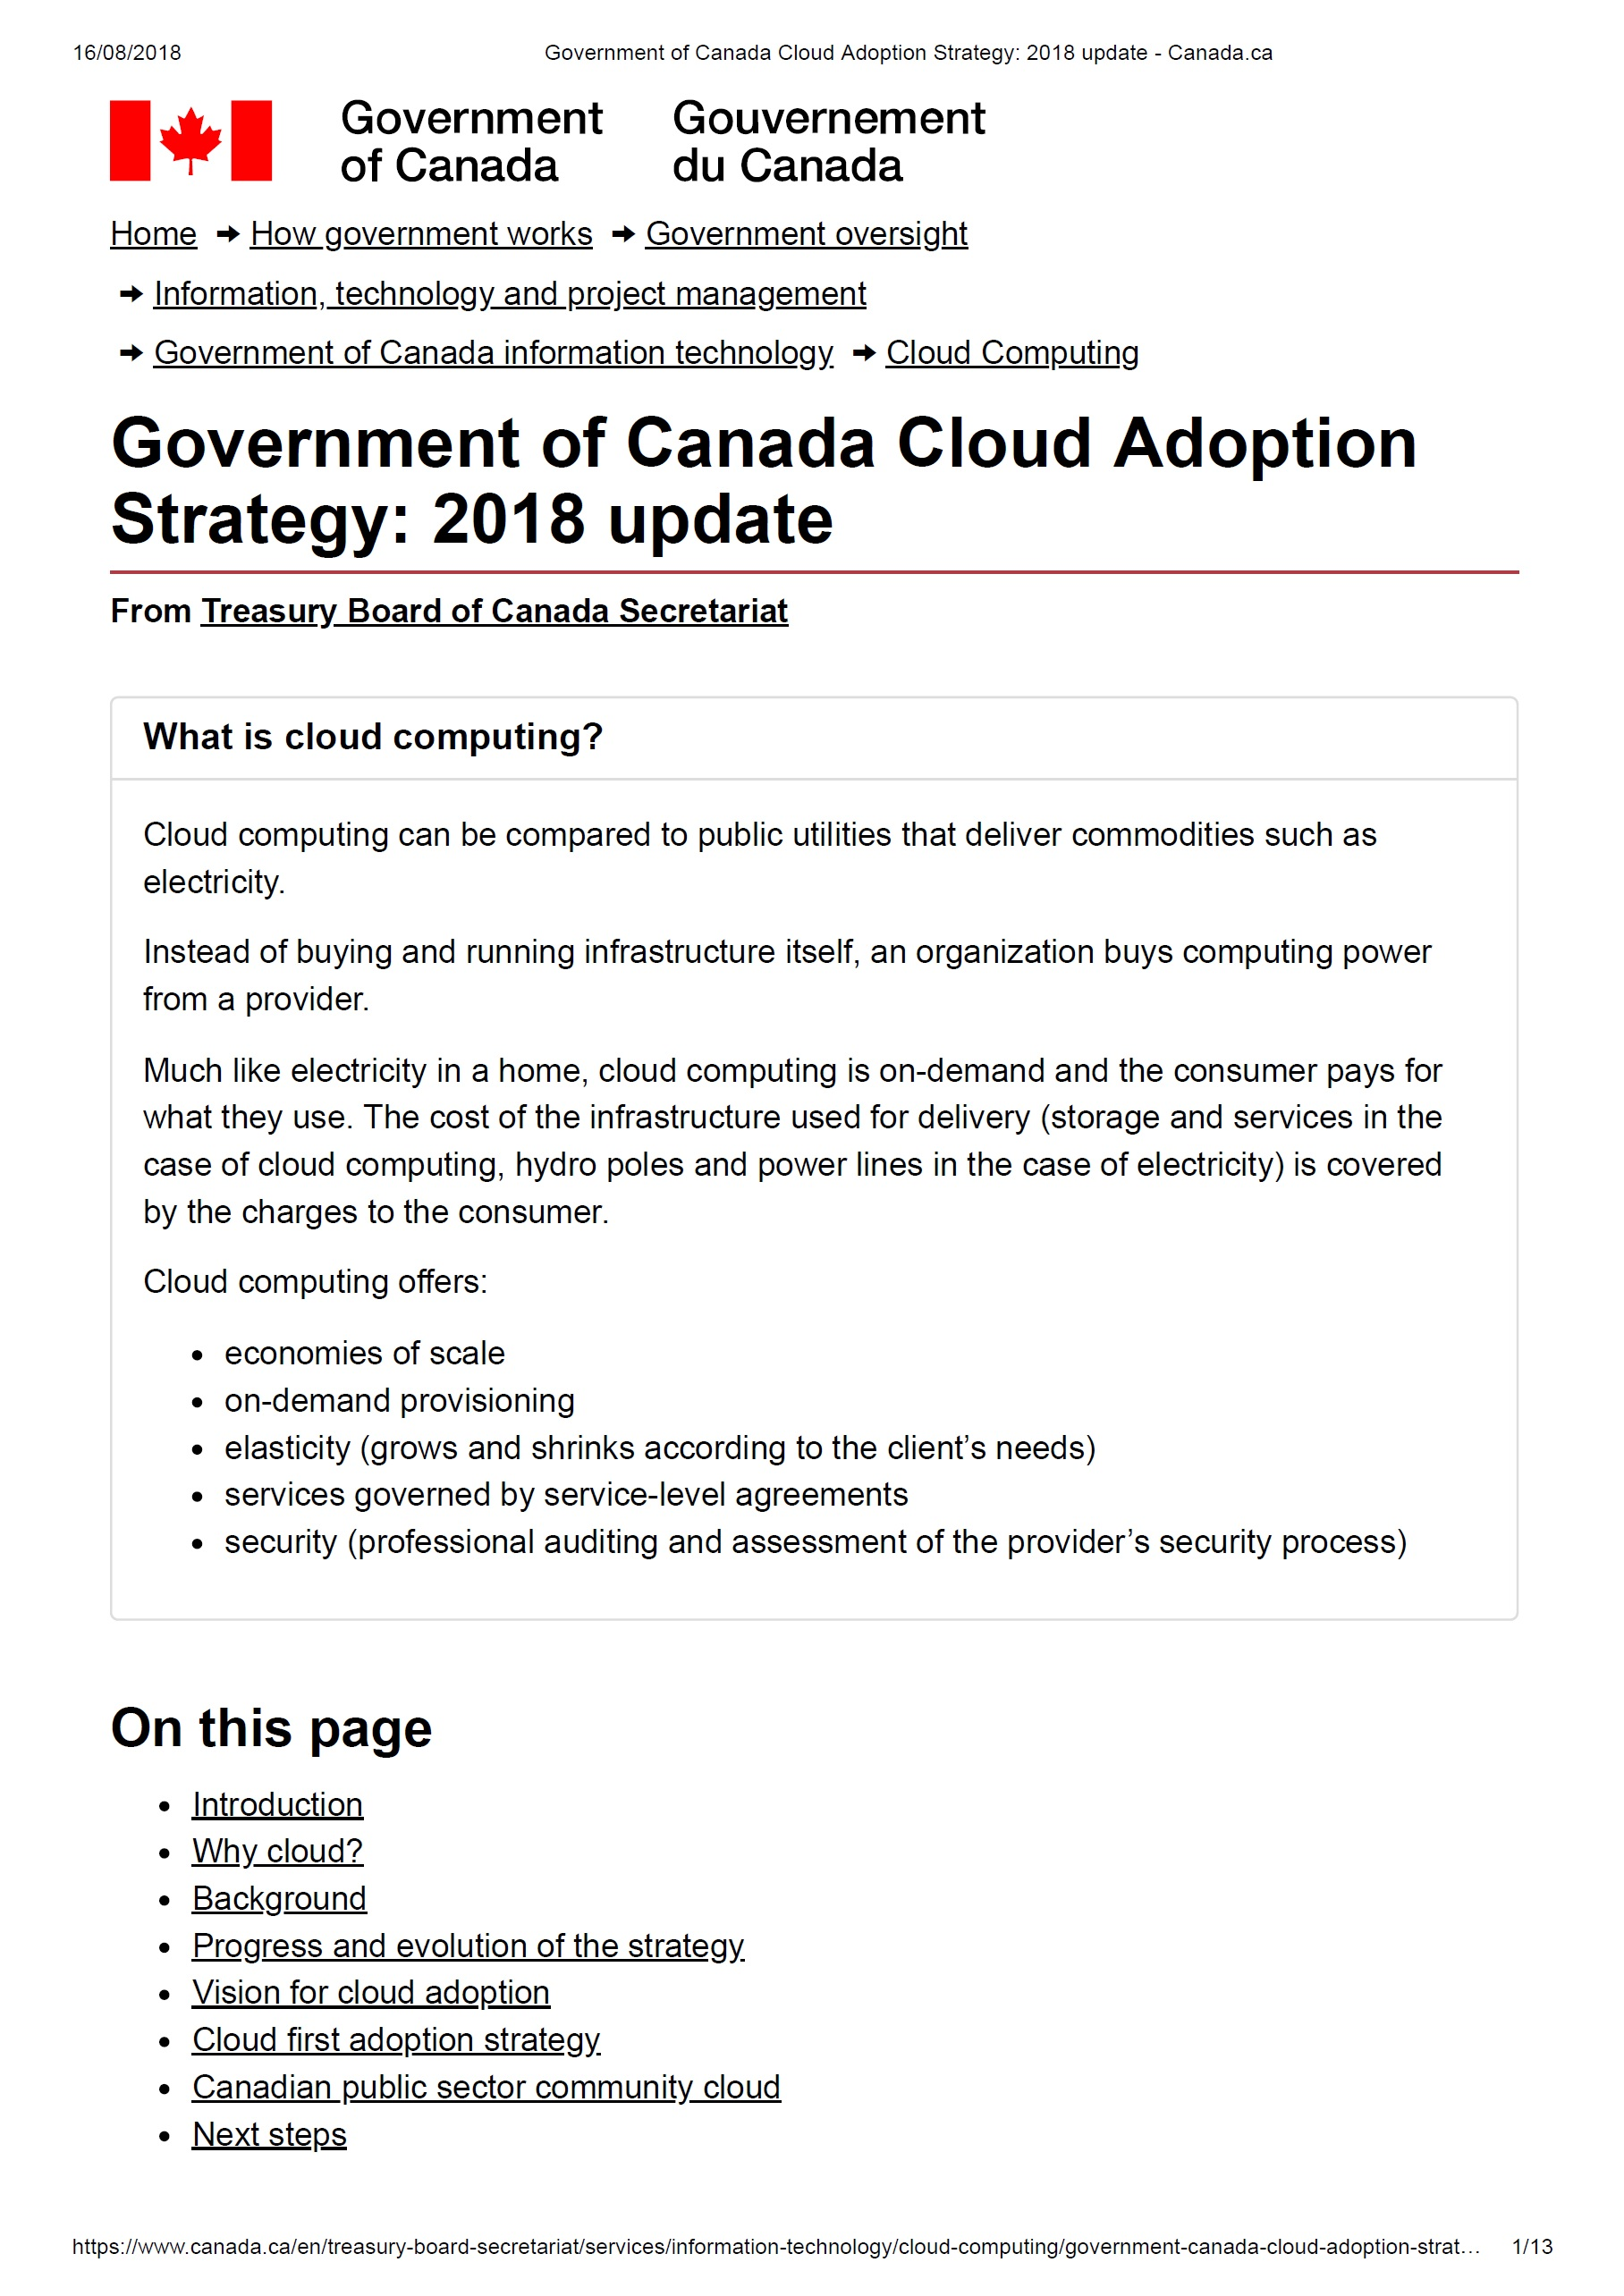 Government of Canada Cloud AdoptionStrategy: 2018